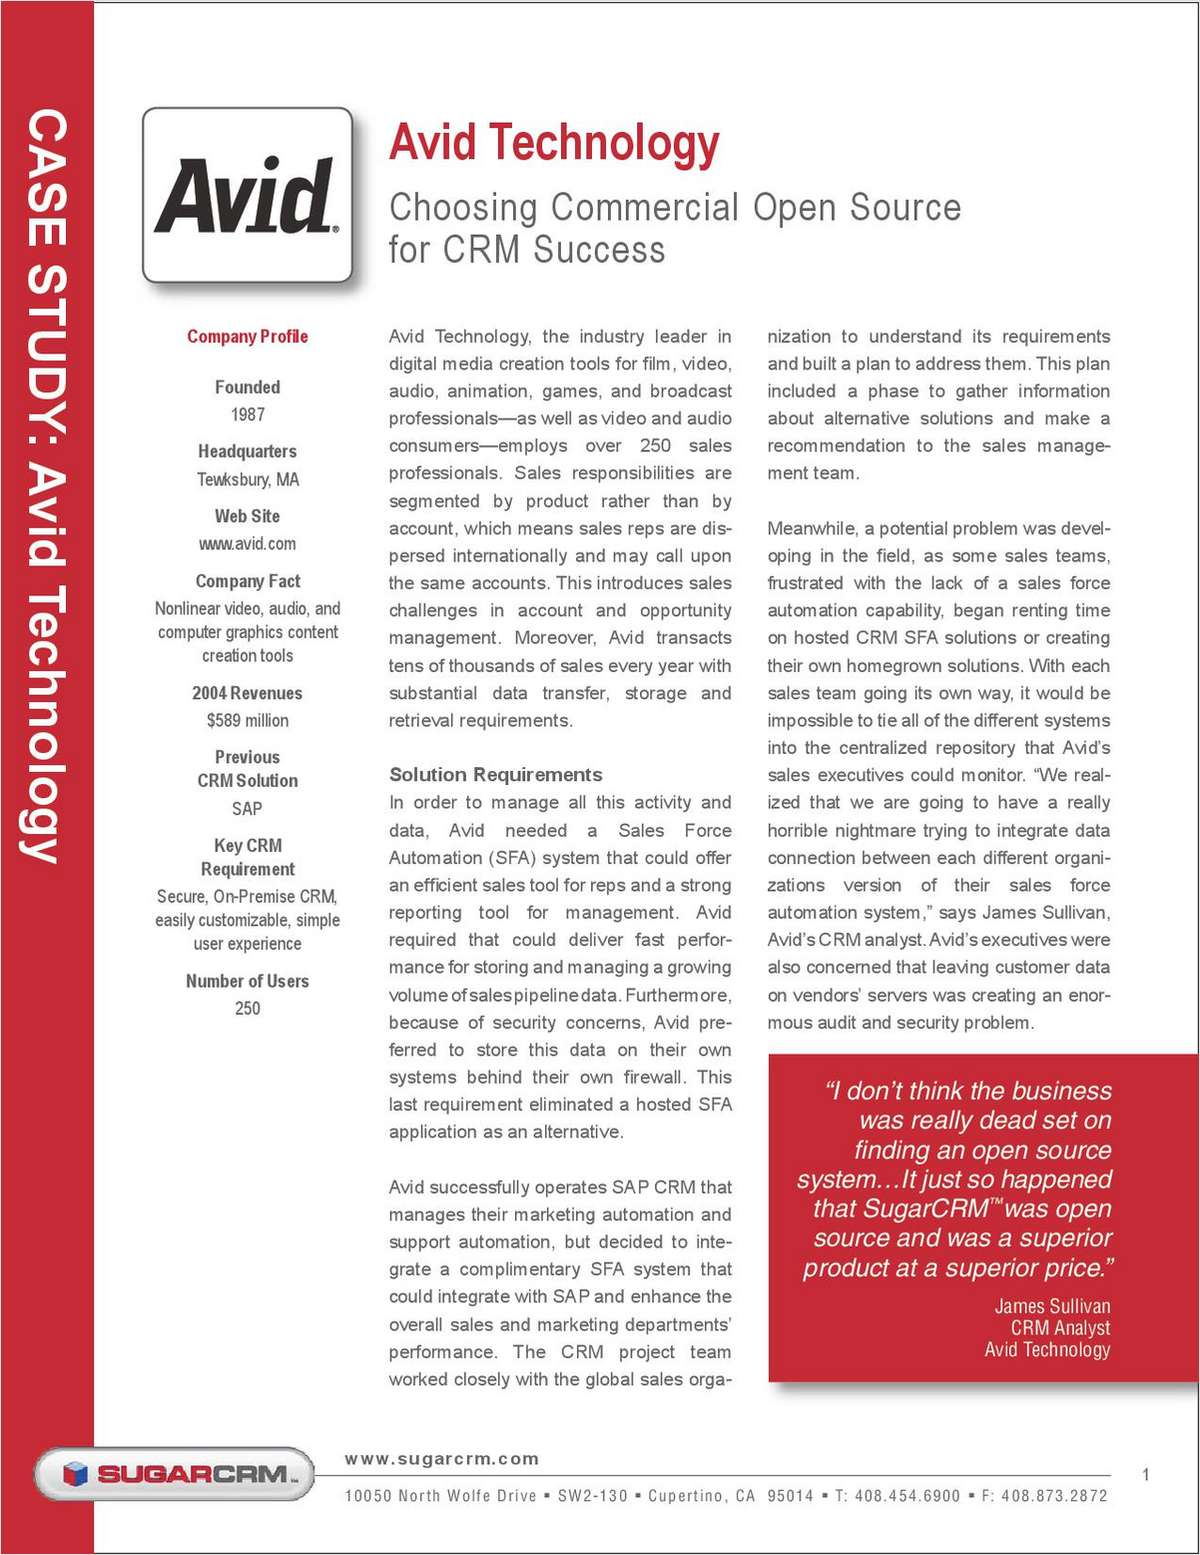 Avid Technology Choosing Commercial Open Source for CRM Success - Case Study